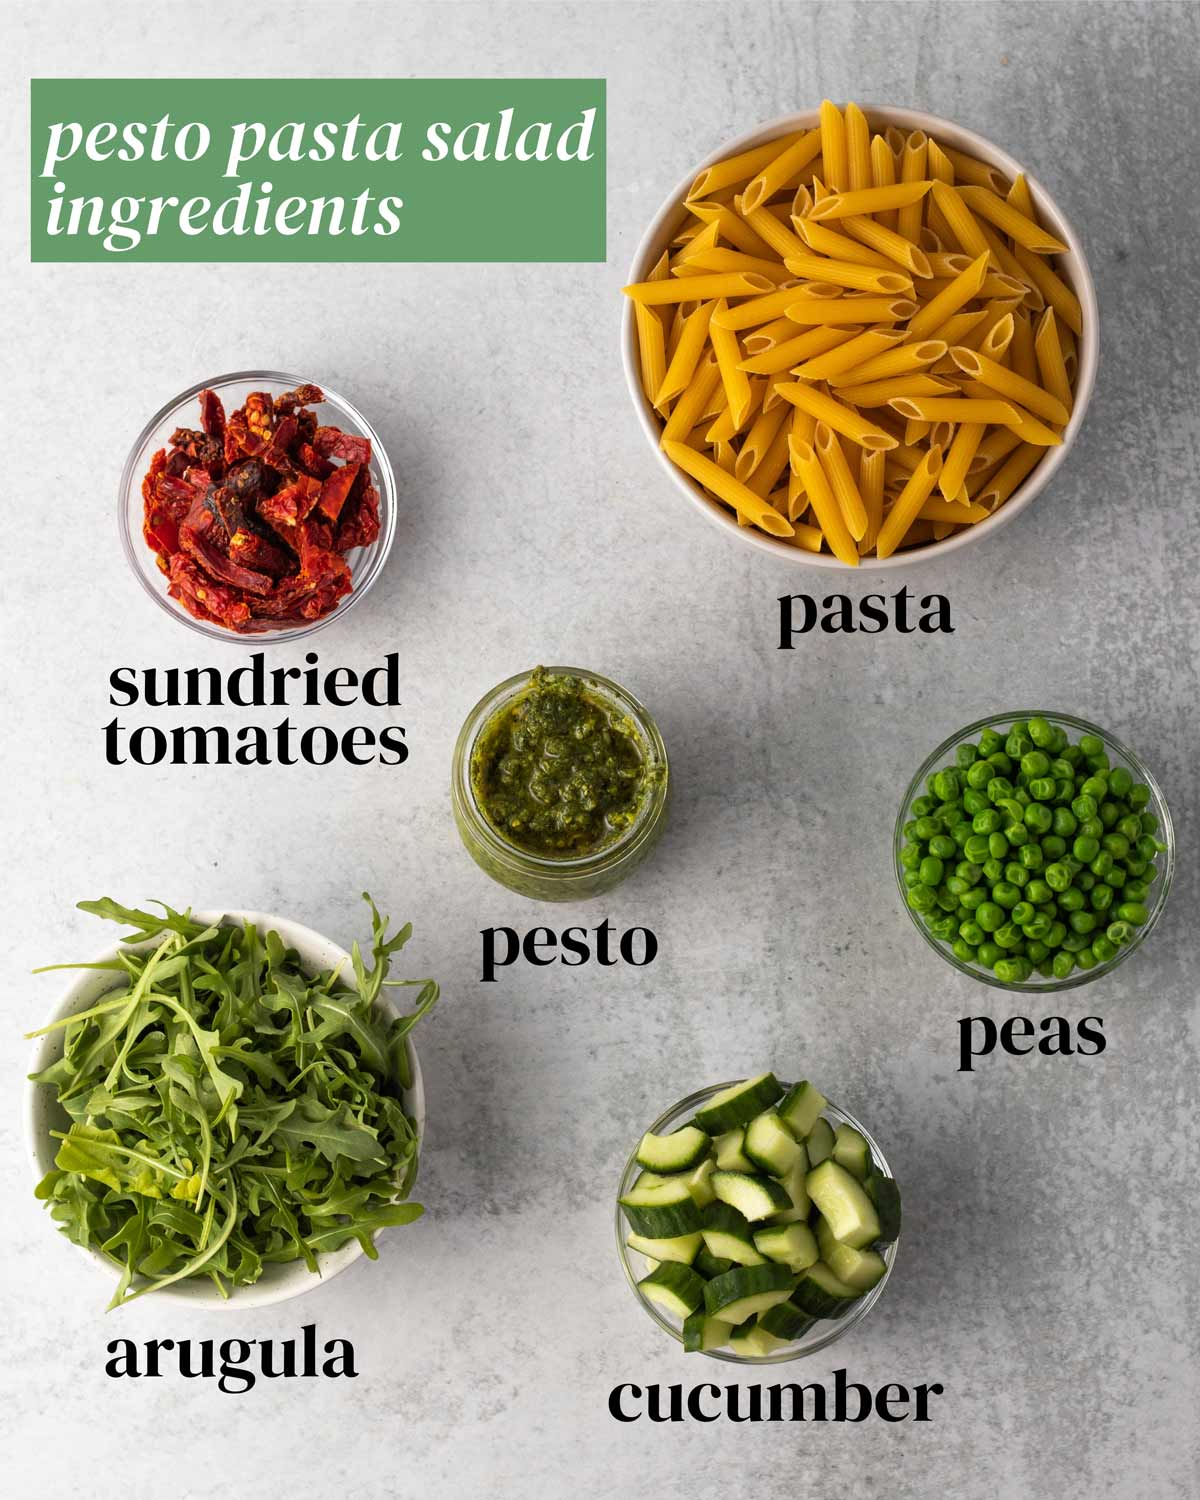 Ingredients for pasta salad with pesto.